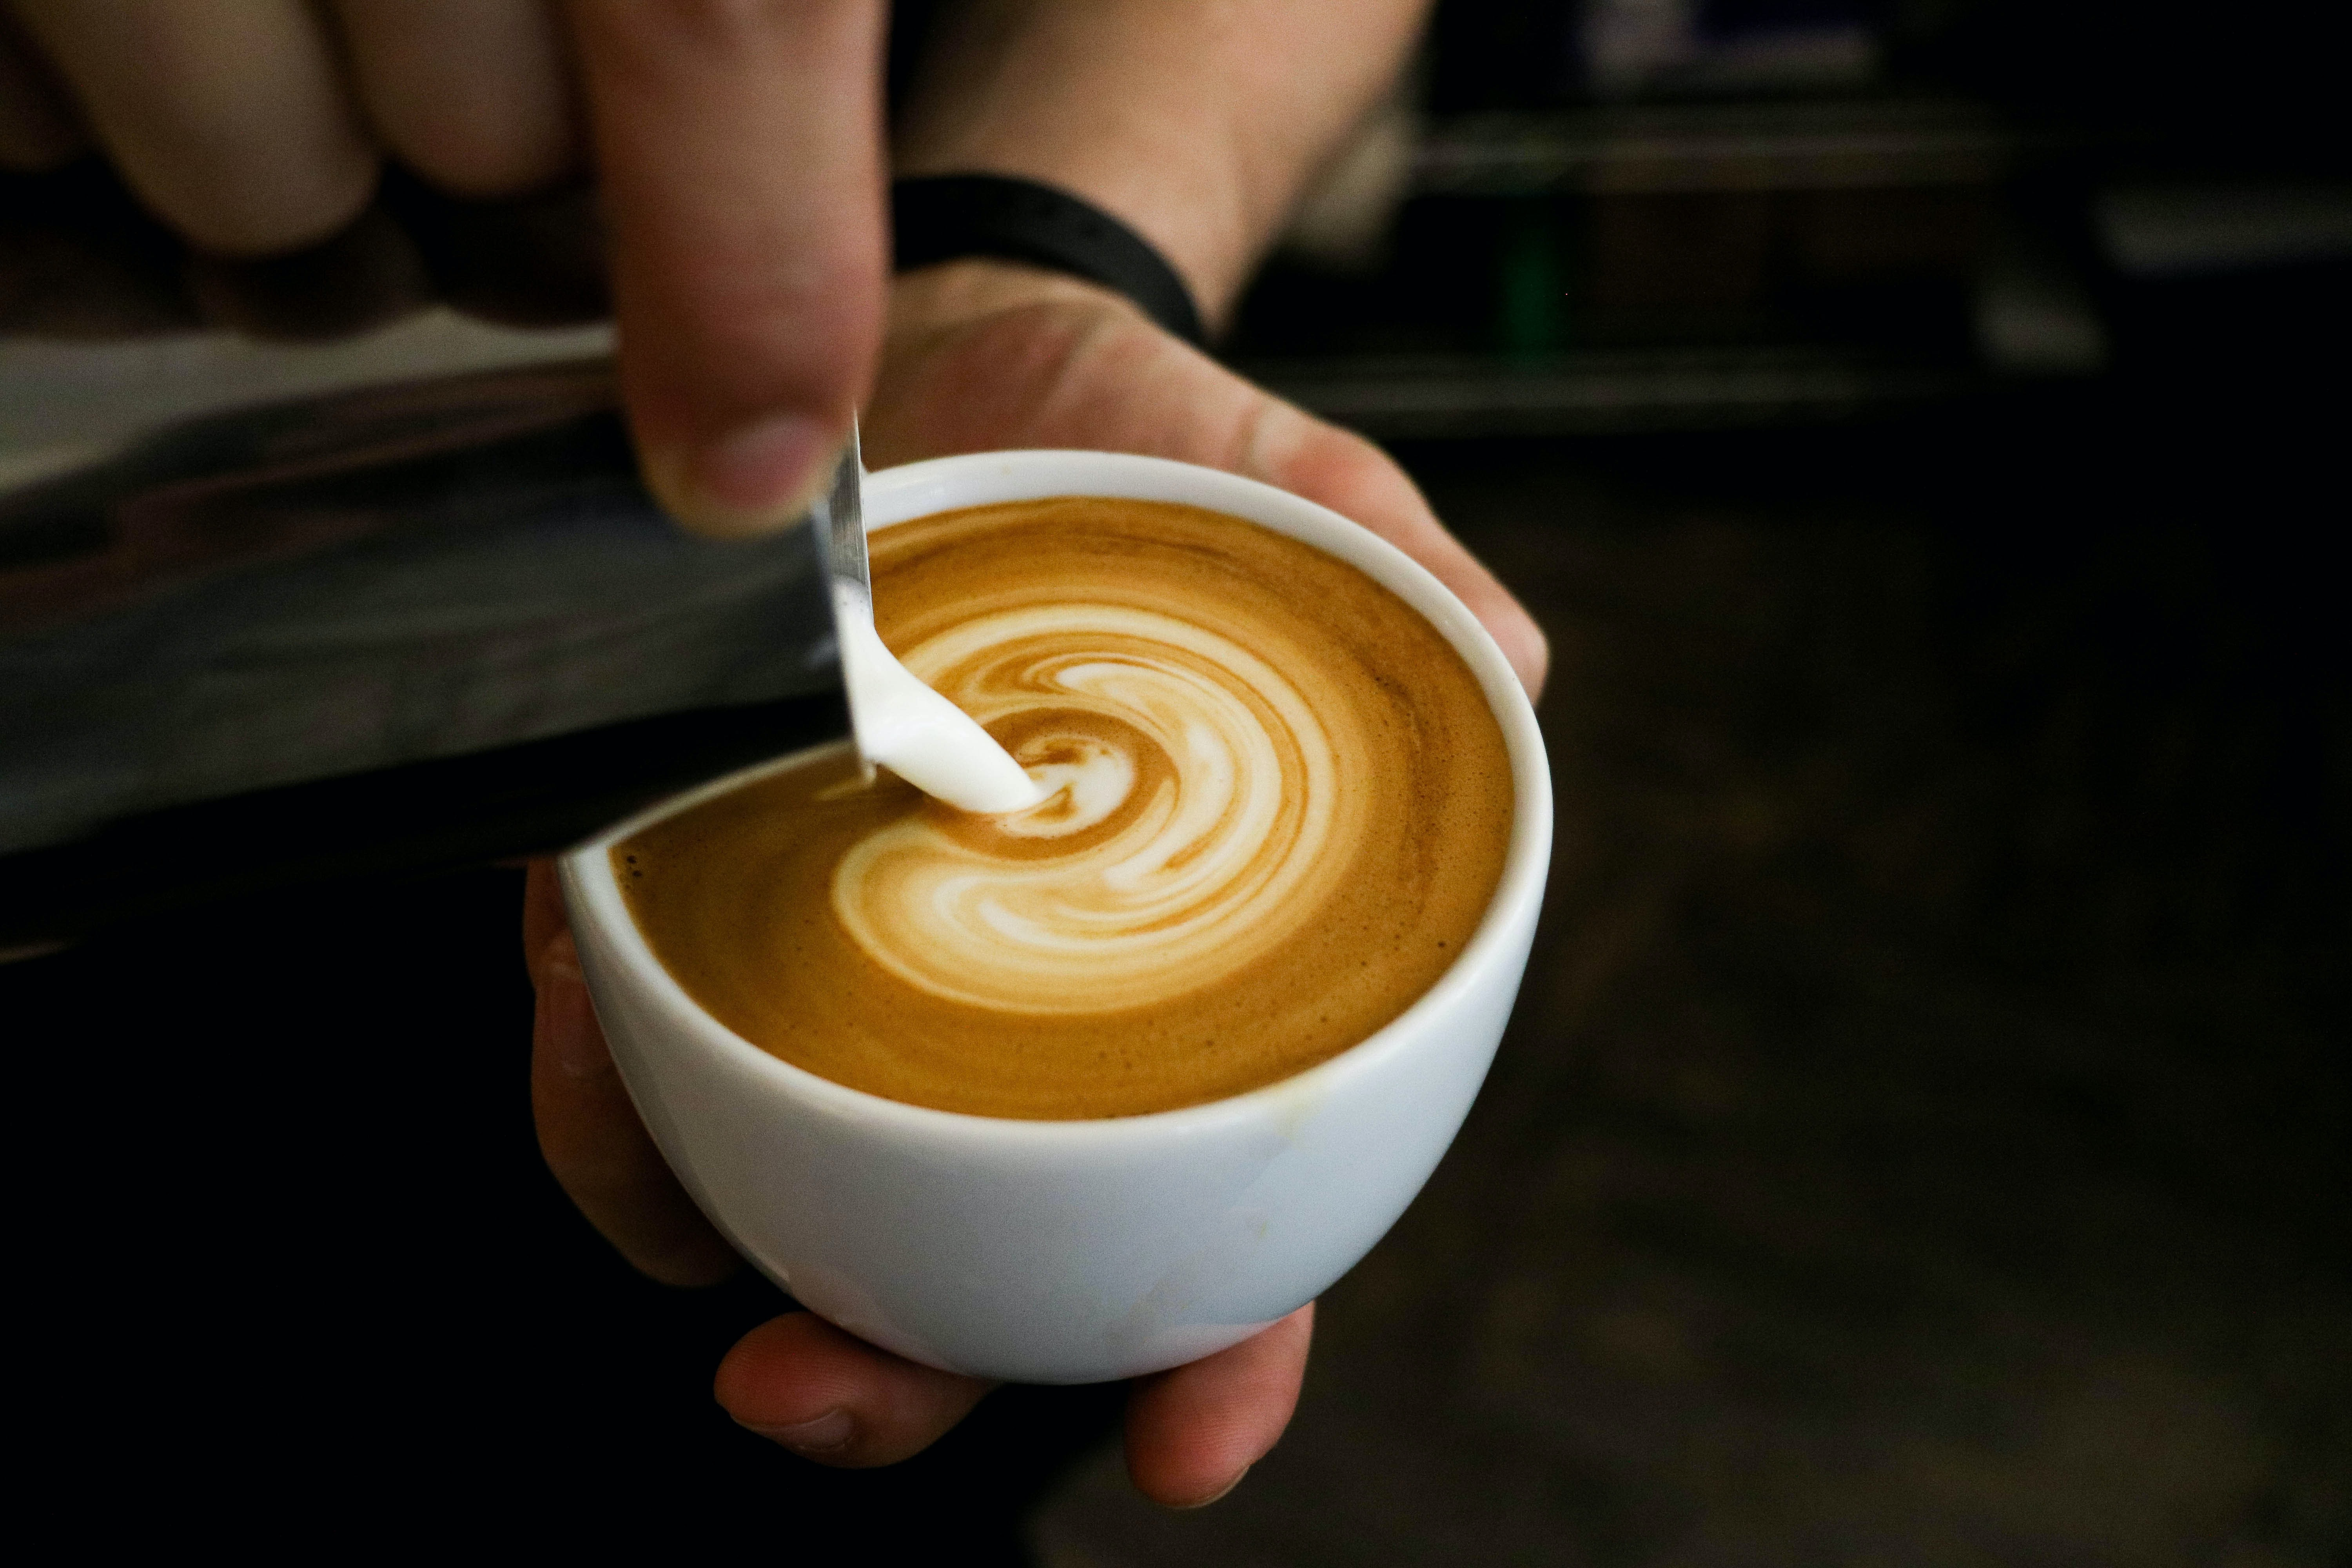 A person's hands holding a coffee cup and pouring cream into it